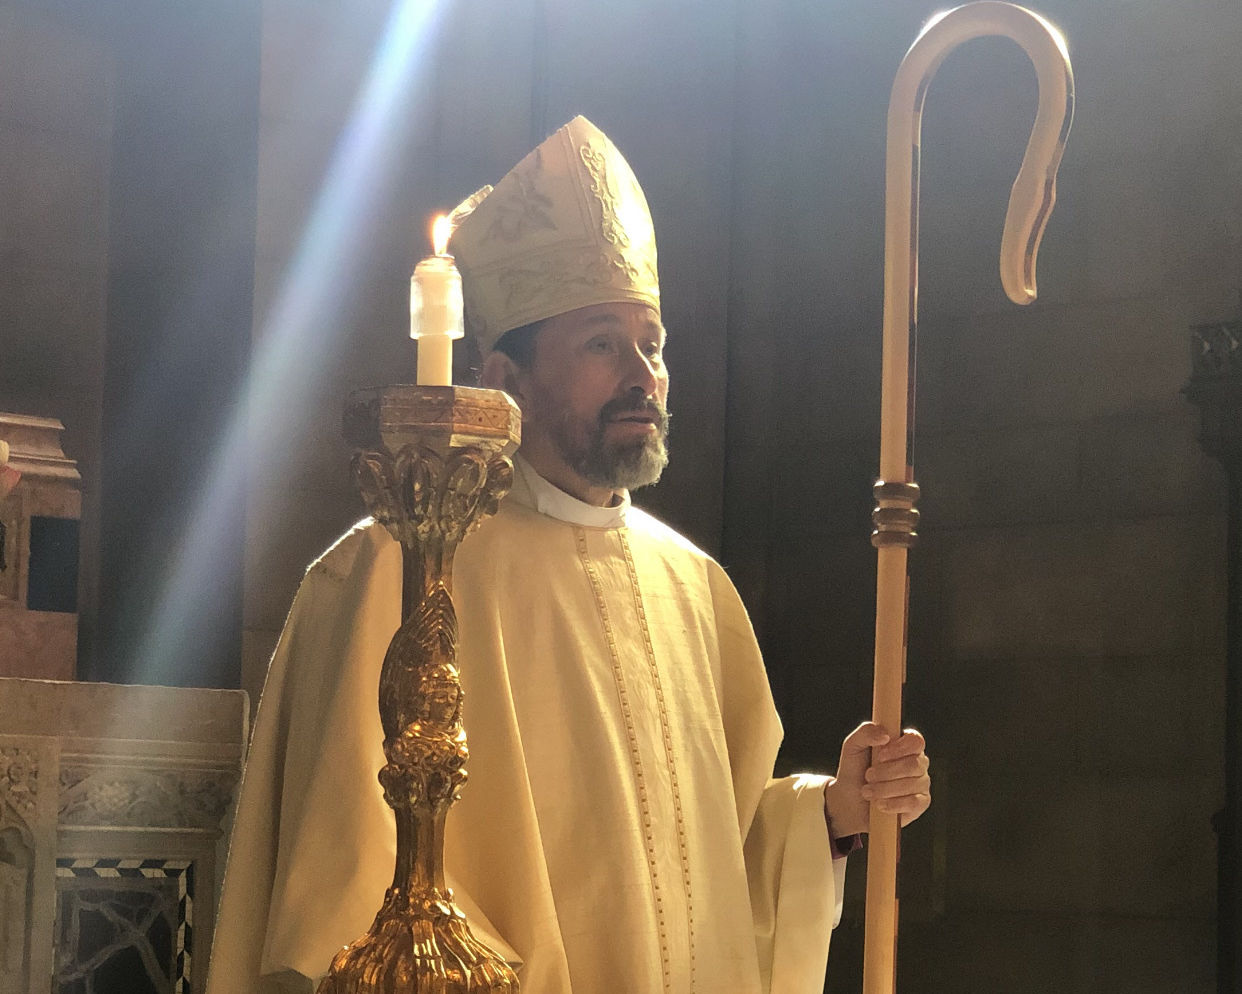 Bishop Daniel